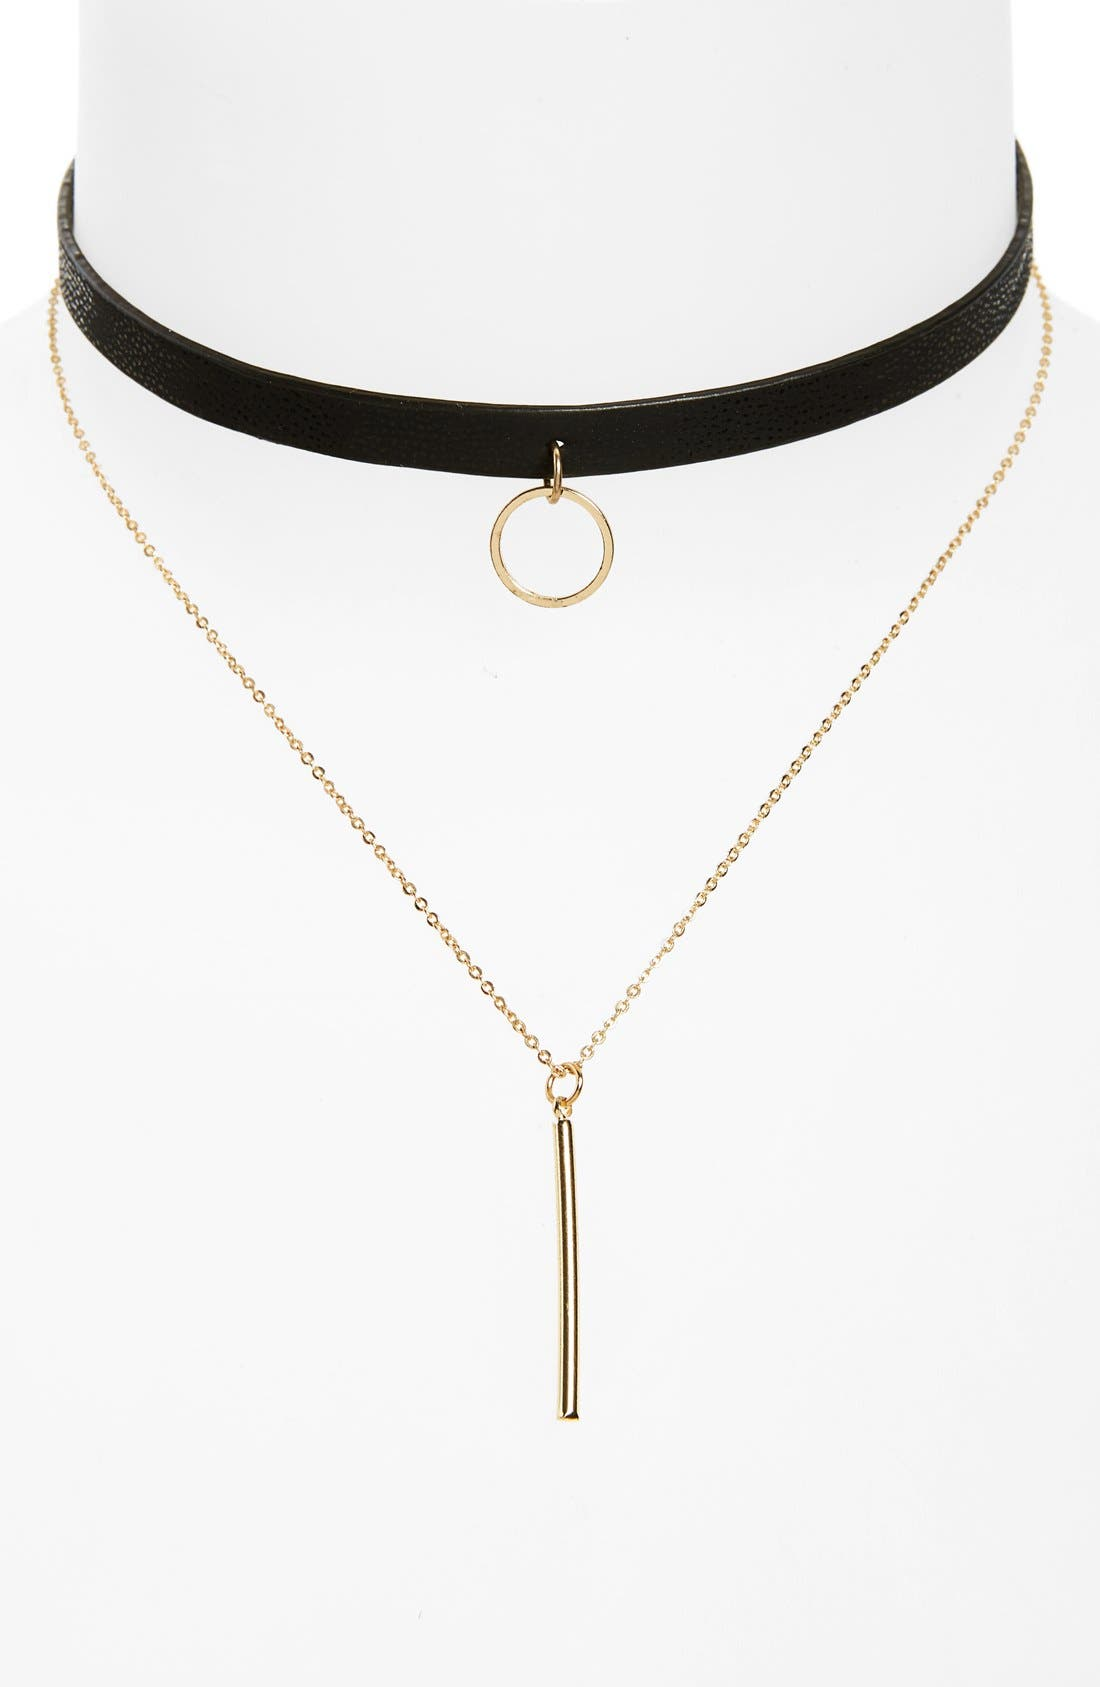 Main Image - Loren Olivia Faux Leather Choker Double Strand Bar Necklace